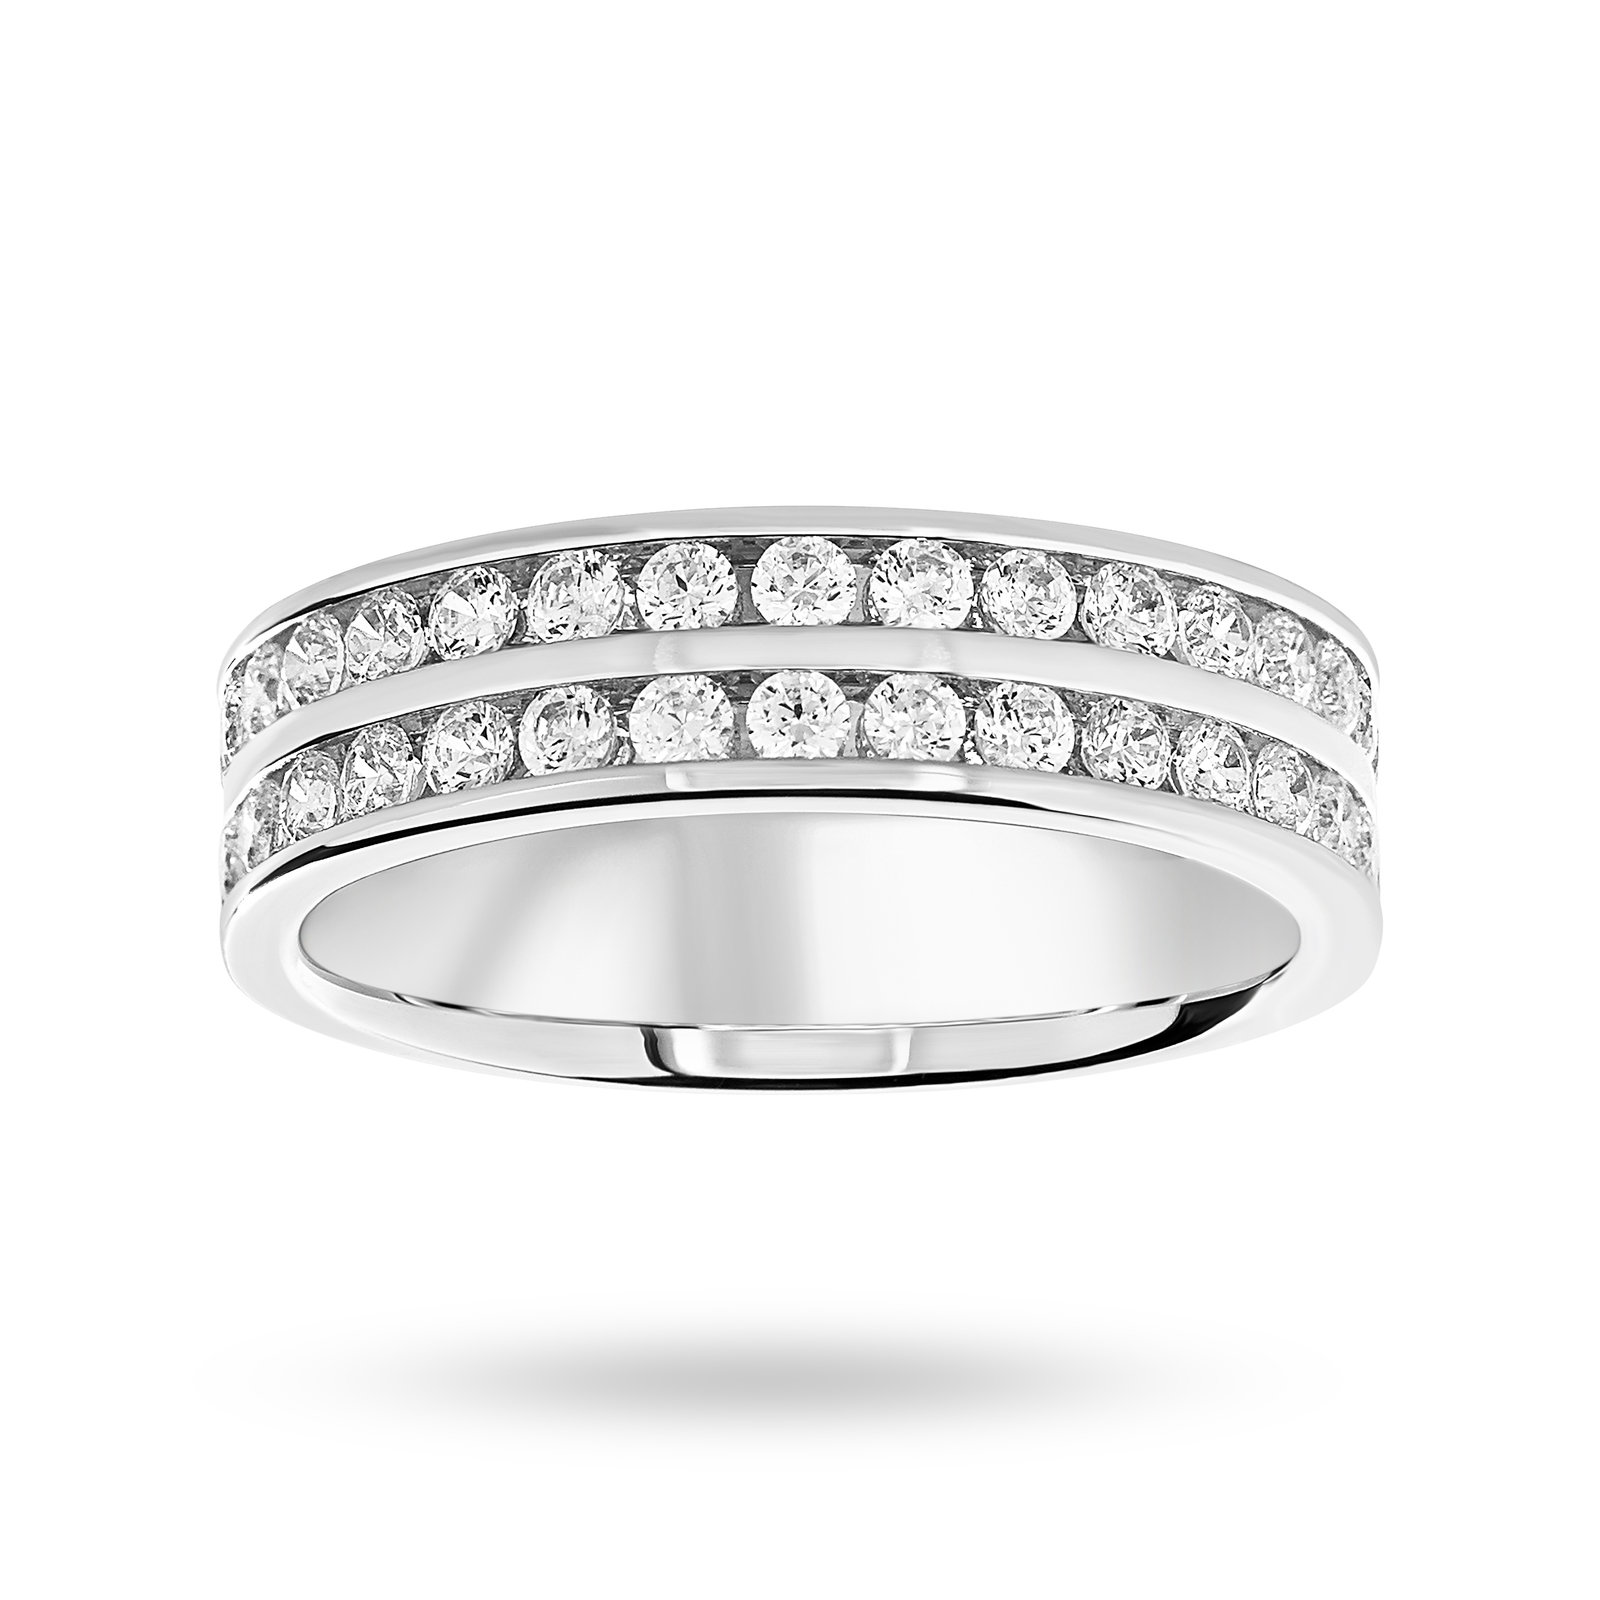 set baxtermoerman rings in diamond products gold rose jewellery white band bead stack eternity